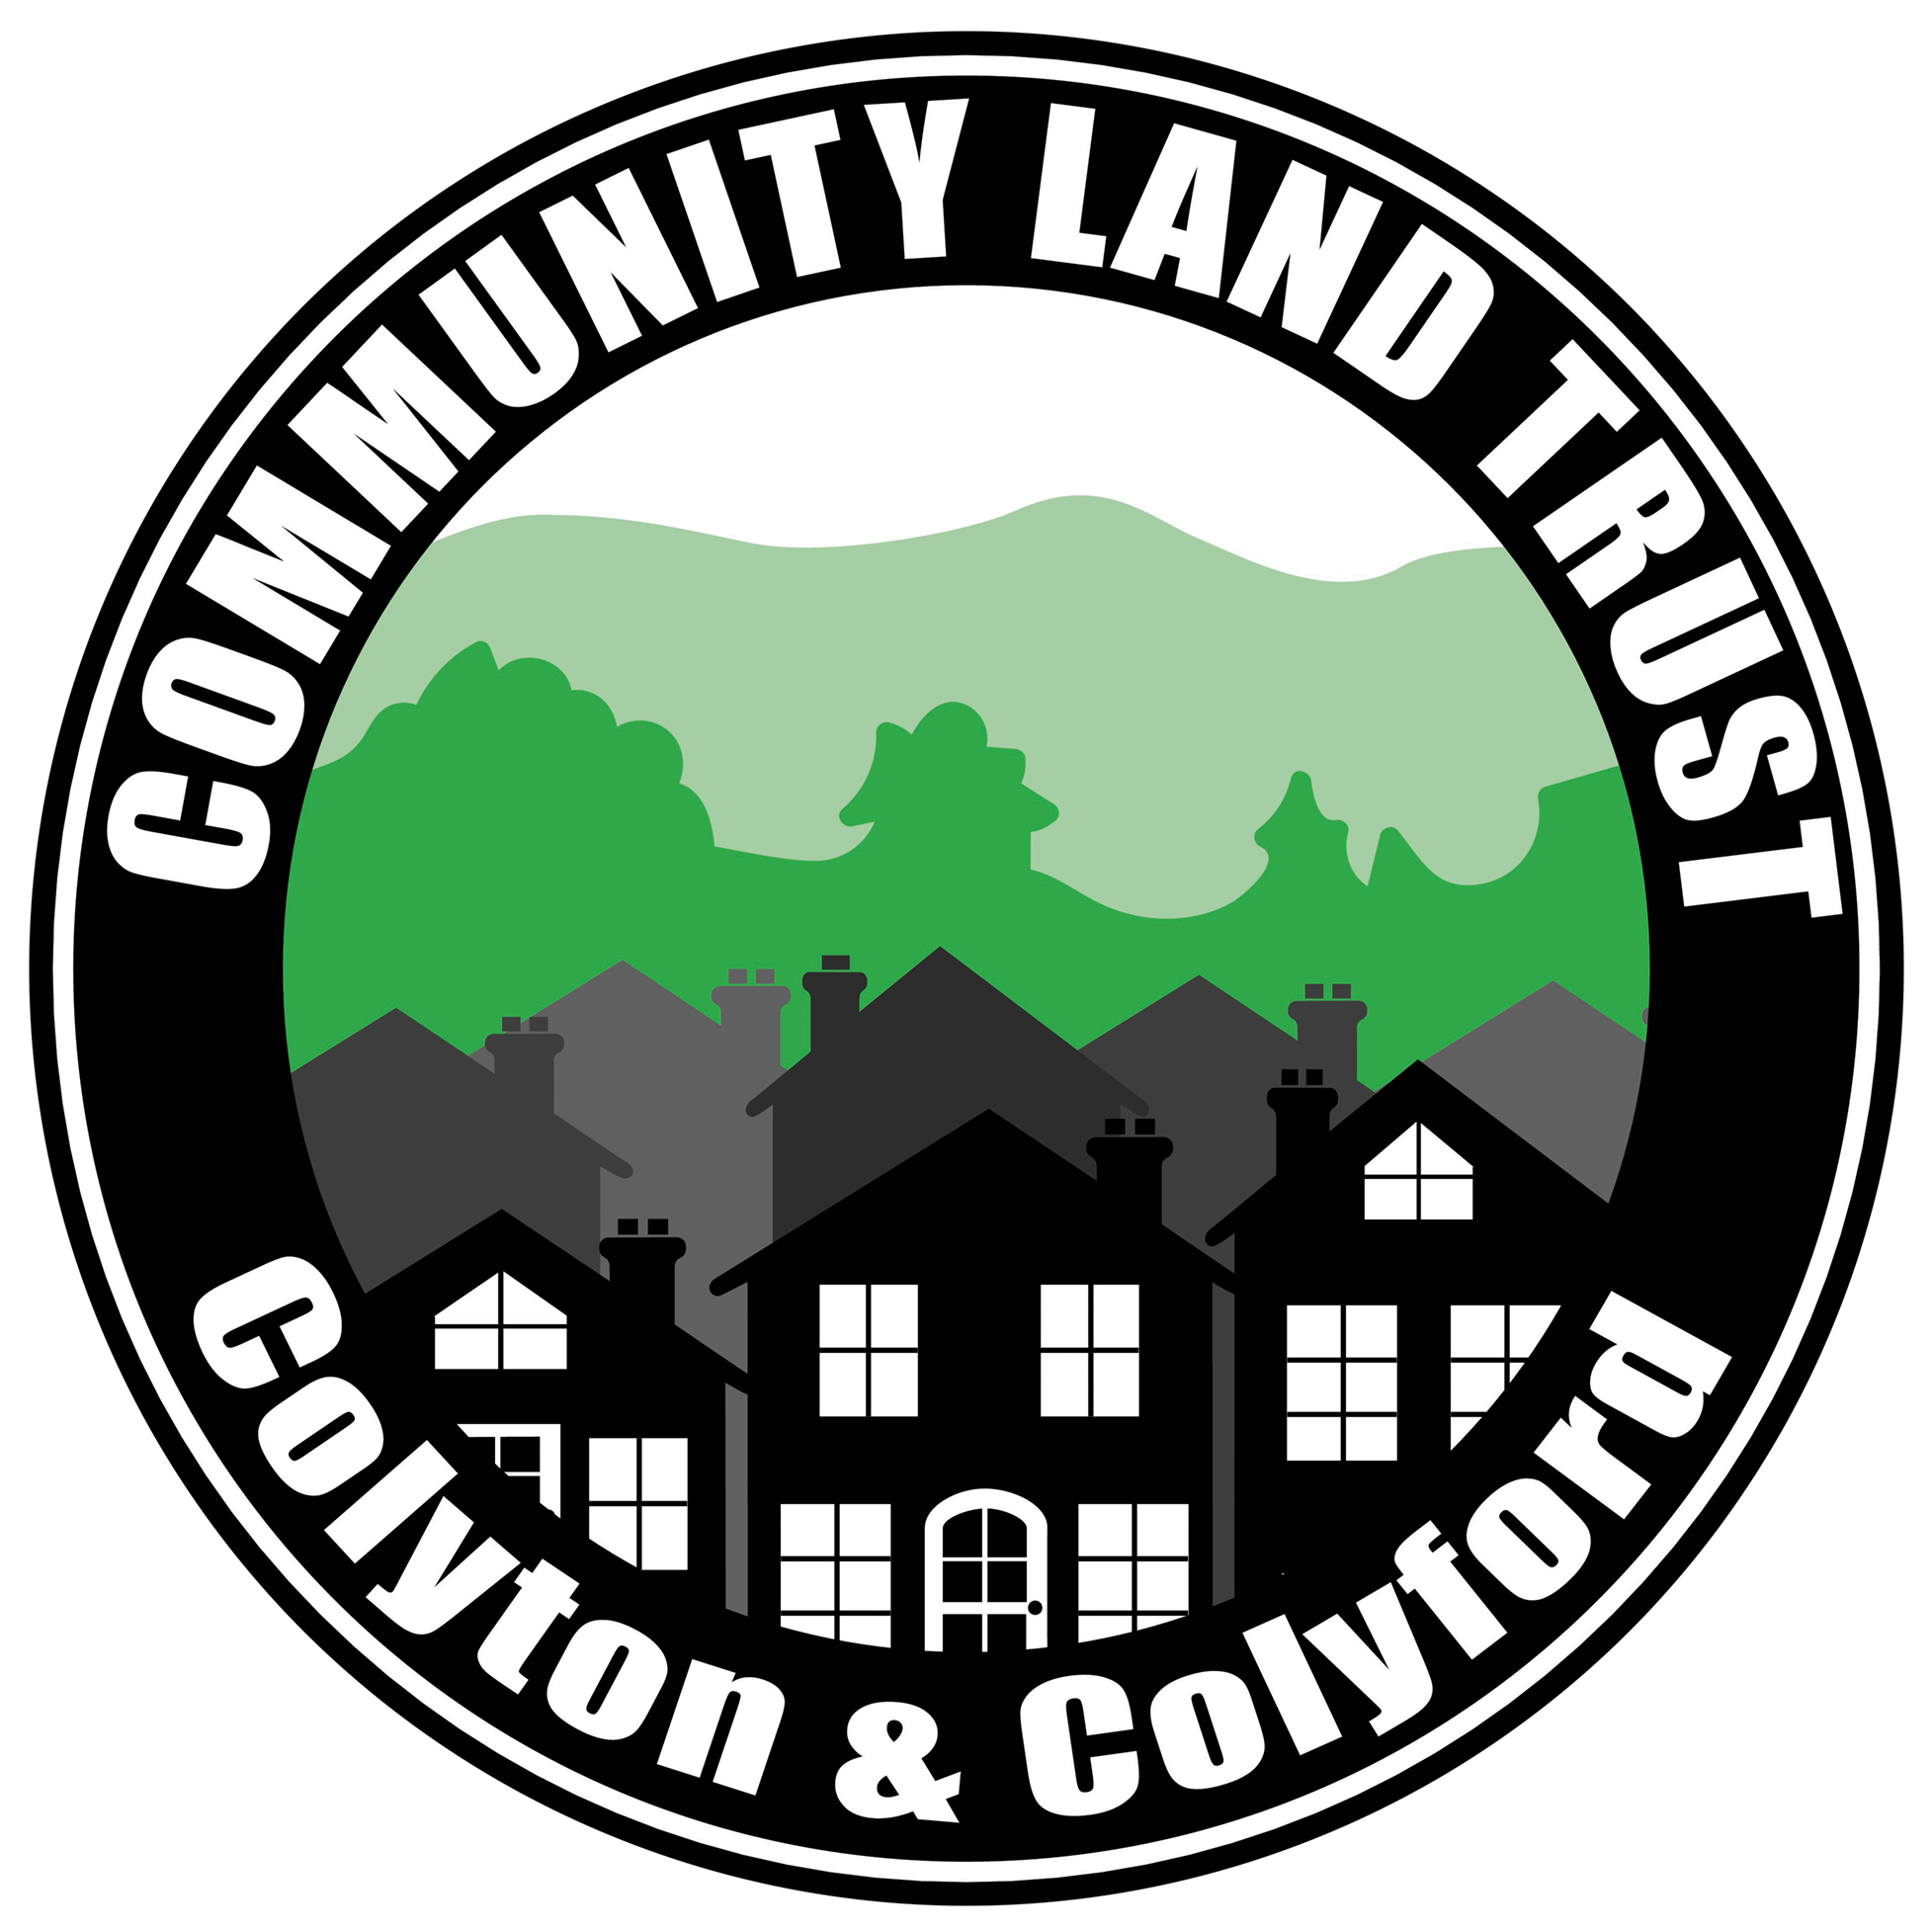 CCCLT - Colyton & Colyford Community Land Trust